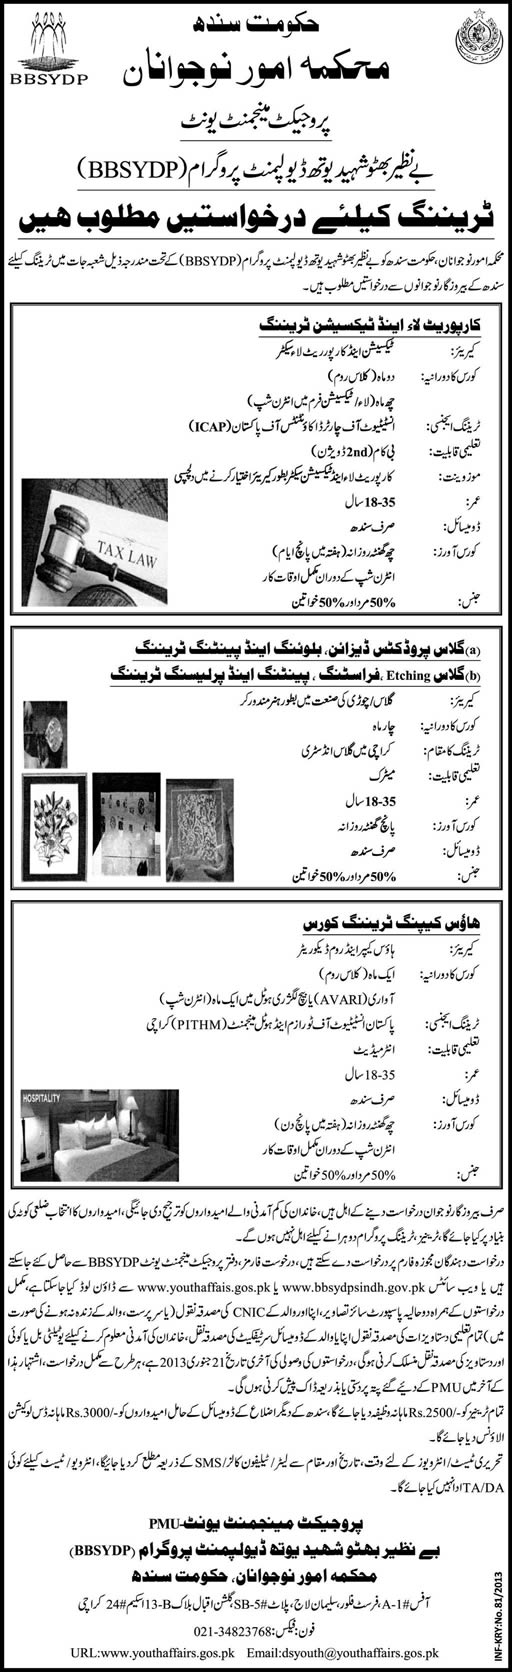 BBSYDP Training Programs 2013 in Sindh Application Form